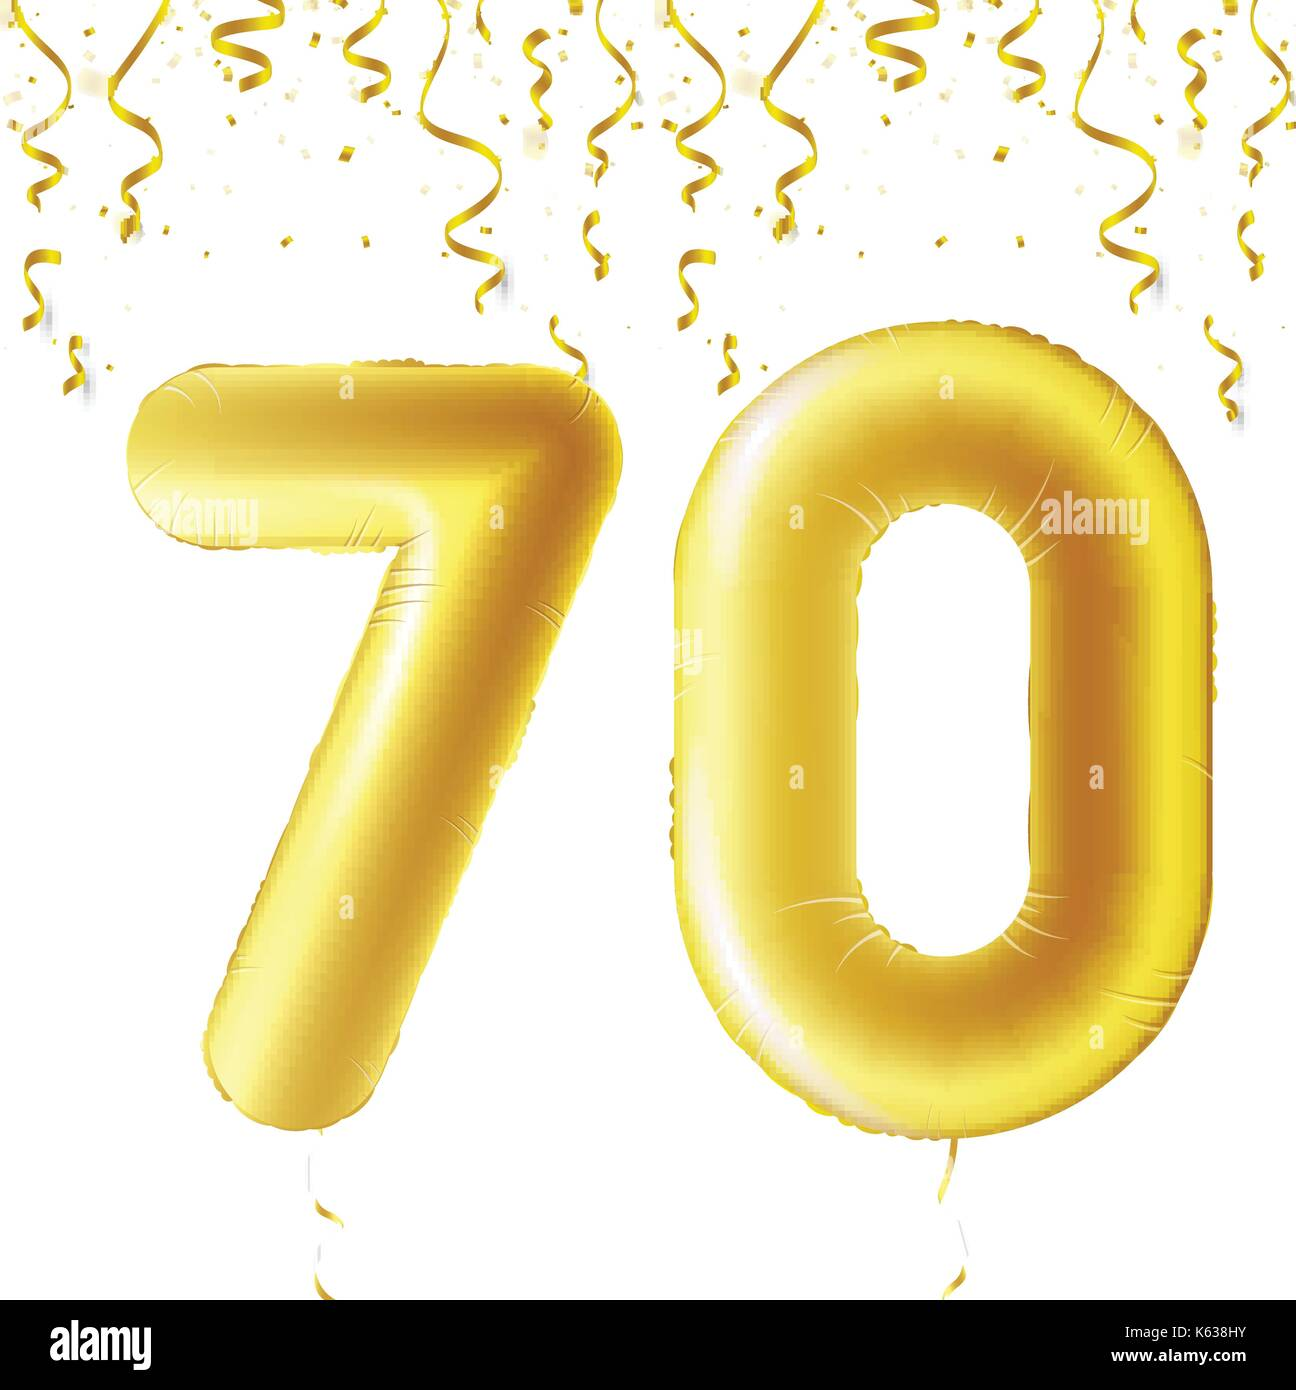 70th birthday balloon stock photos 70th birthday balloon stock inflatable golden balls with falling confetti and hanging ribbons seventy years symbol 70 biocorpaavc